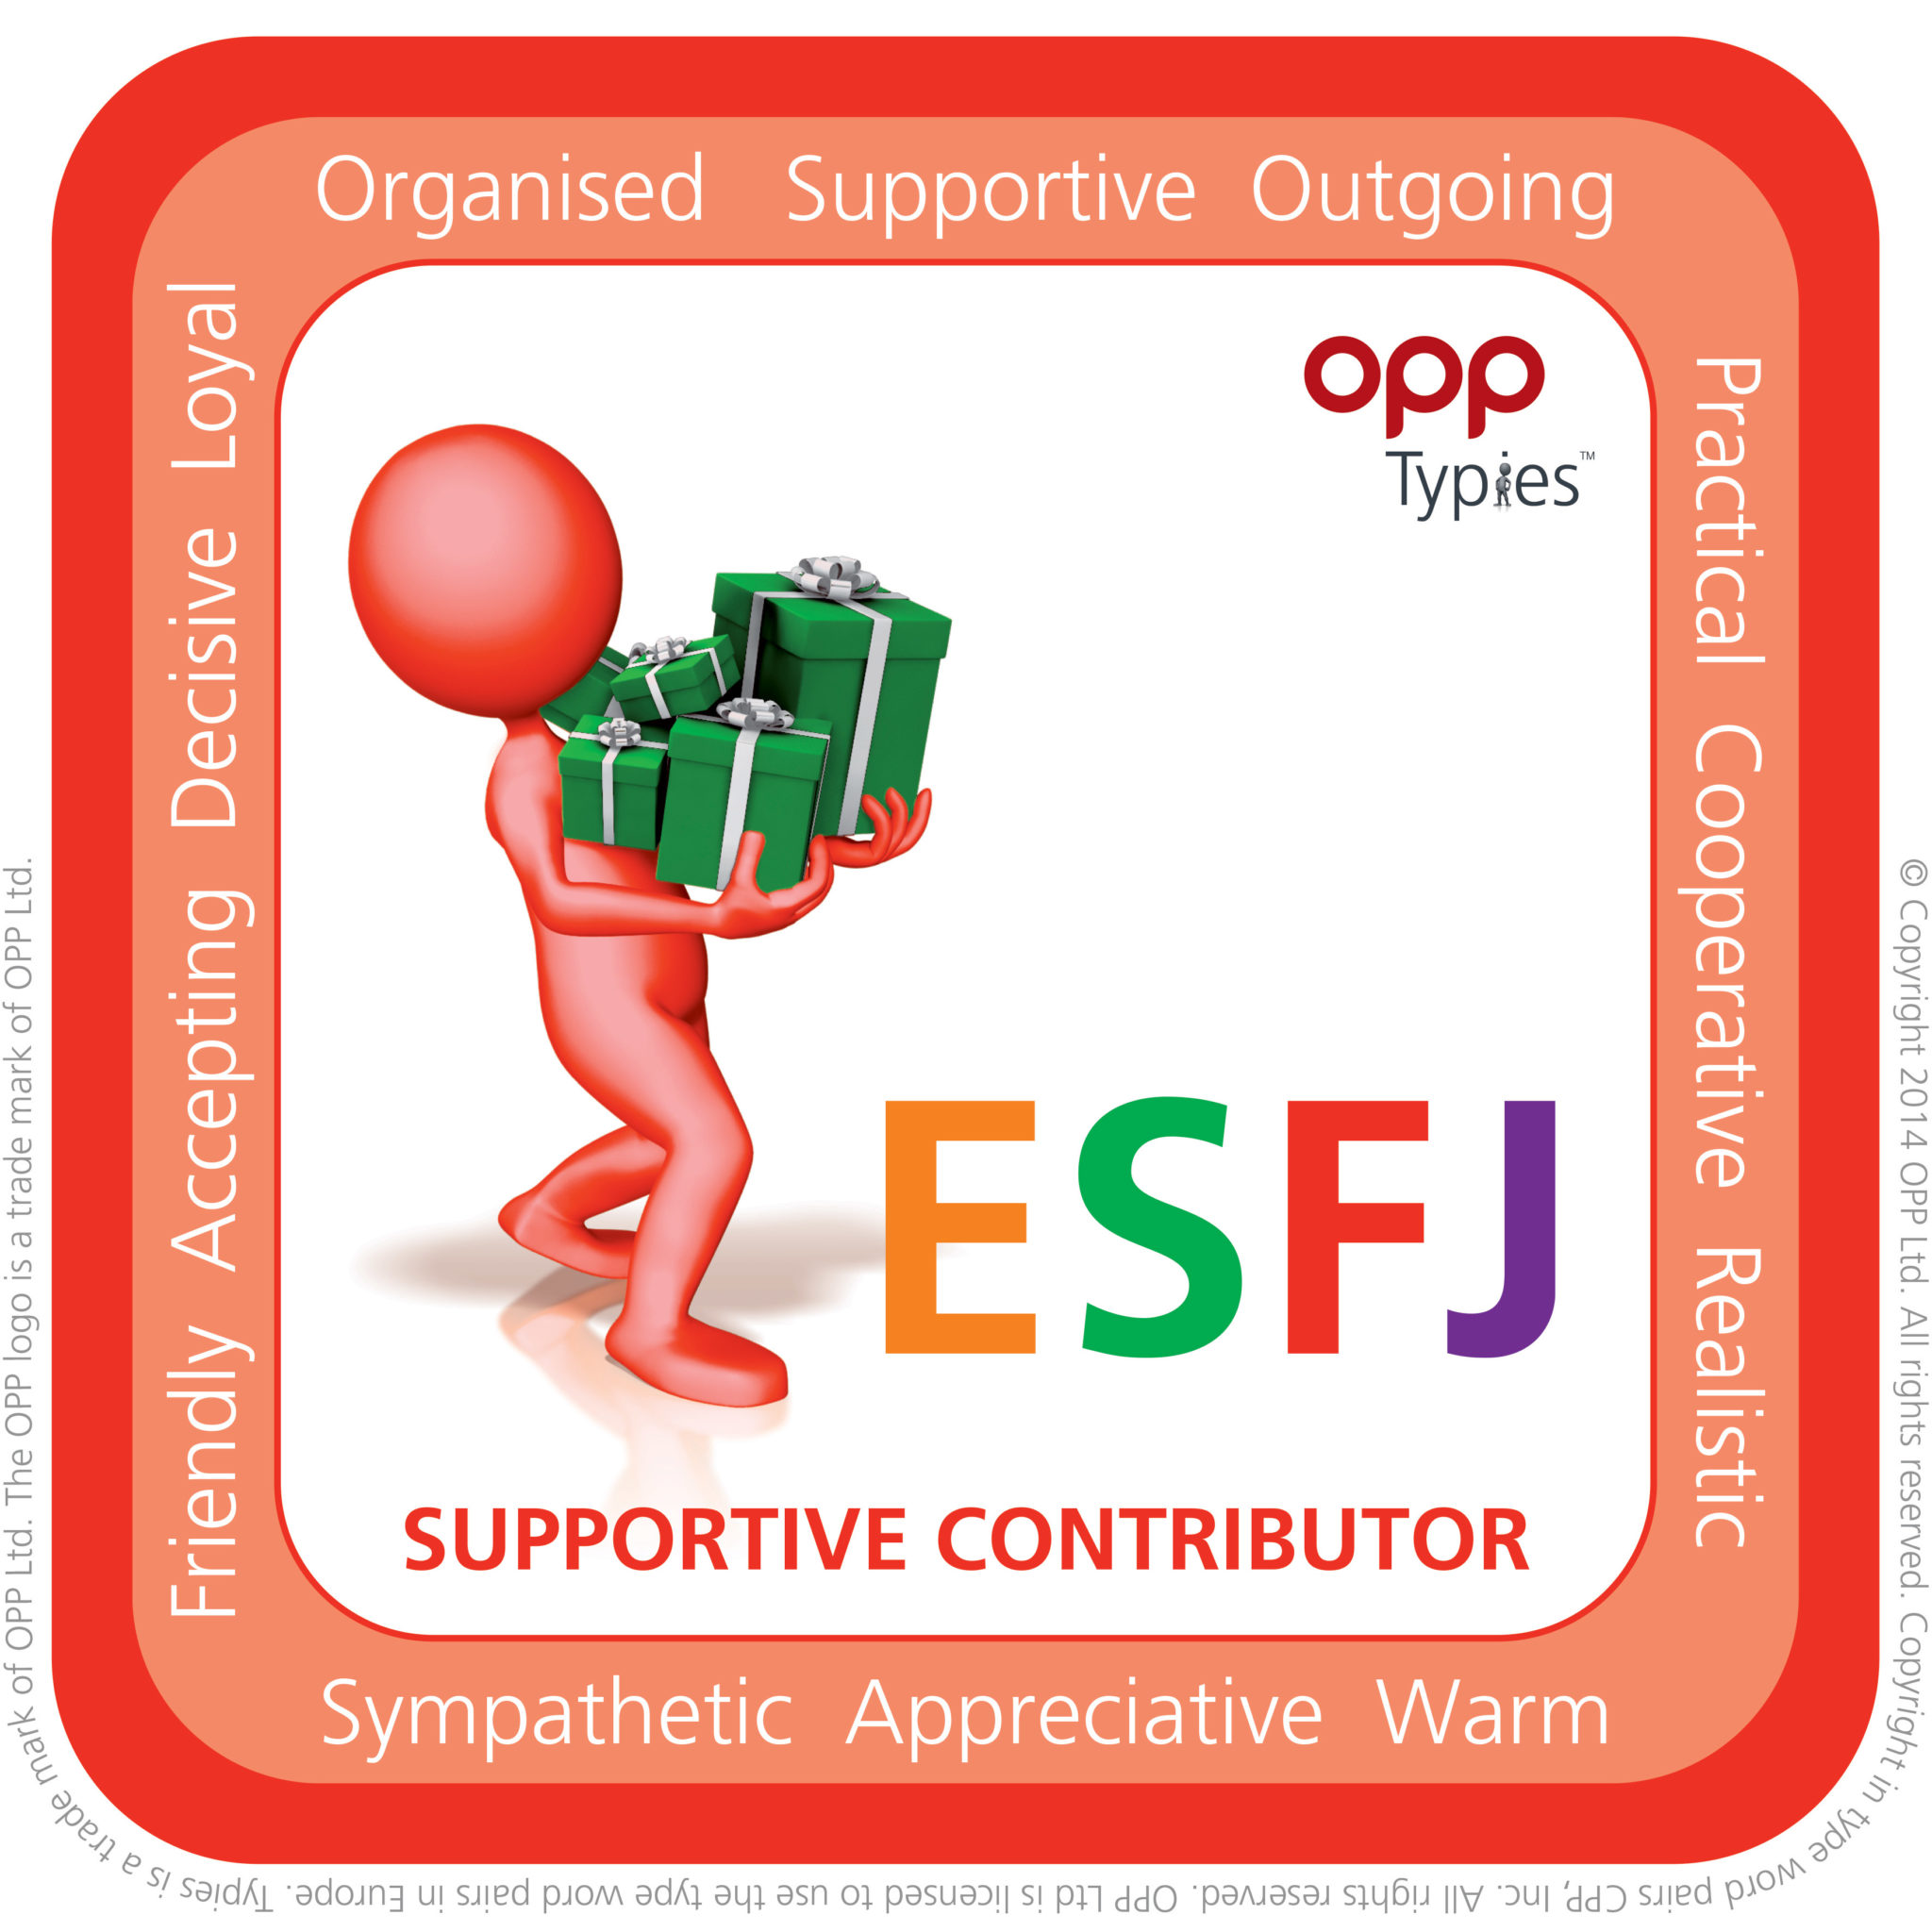 ESFJ Typie, willerby hill hr, hr advice hull, mbti east yorkshire, mbti hull